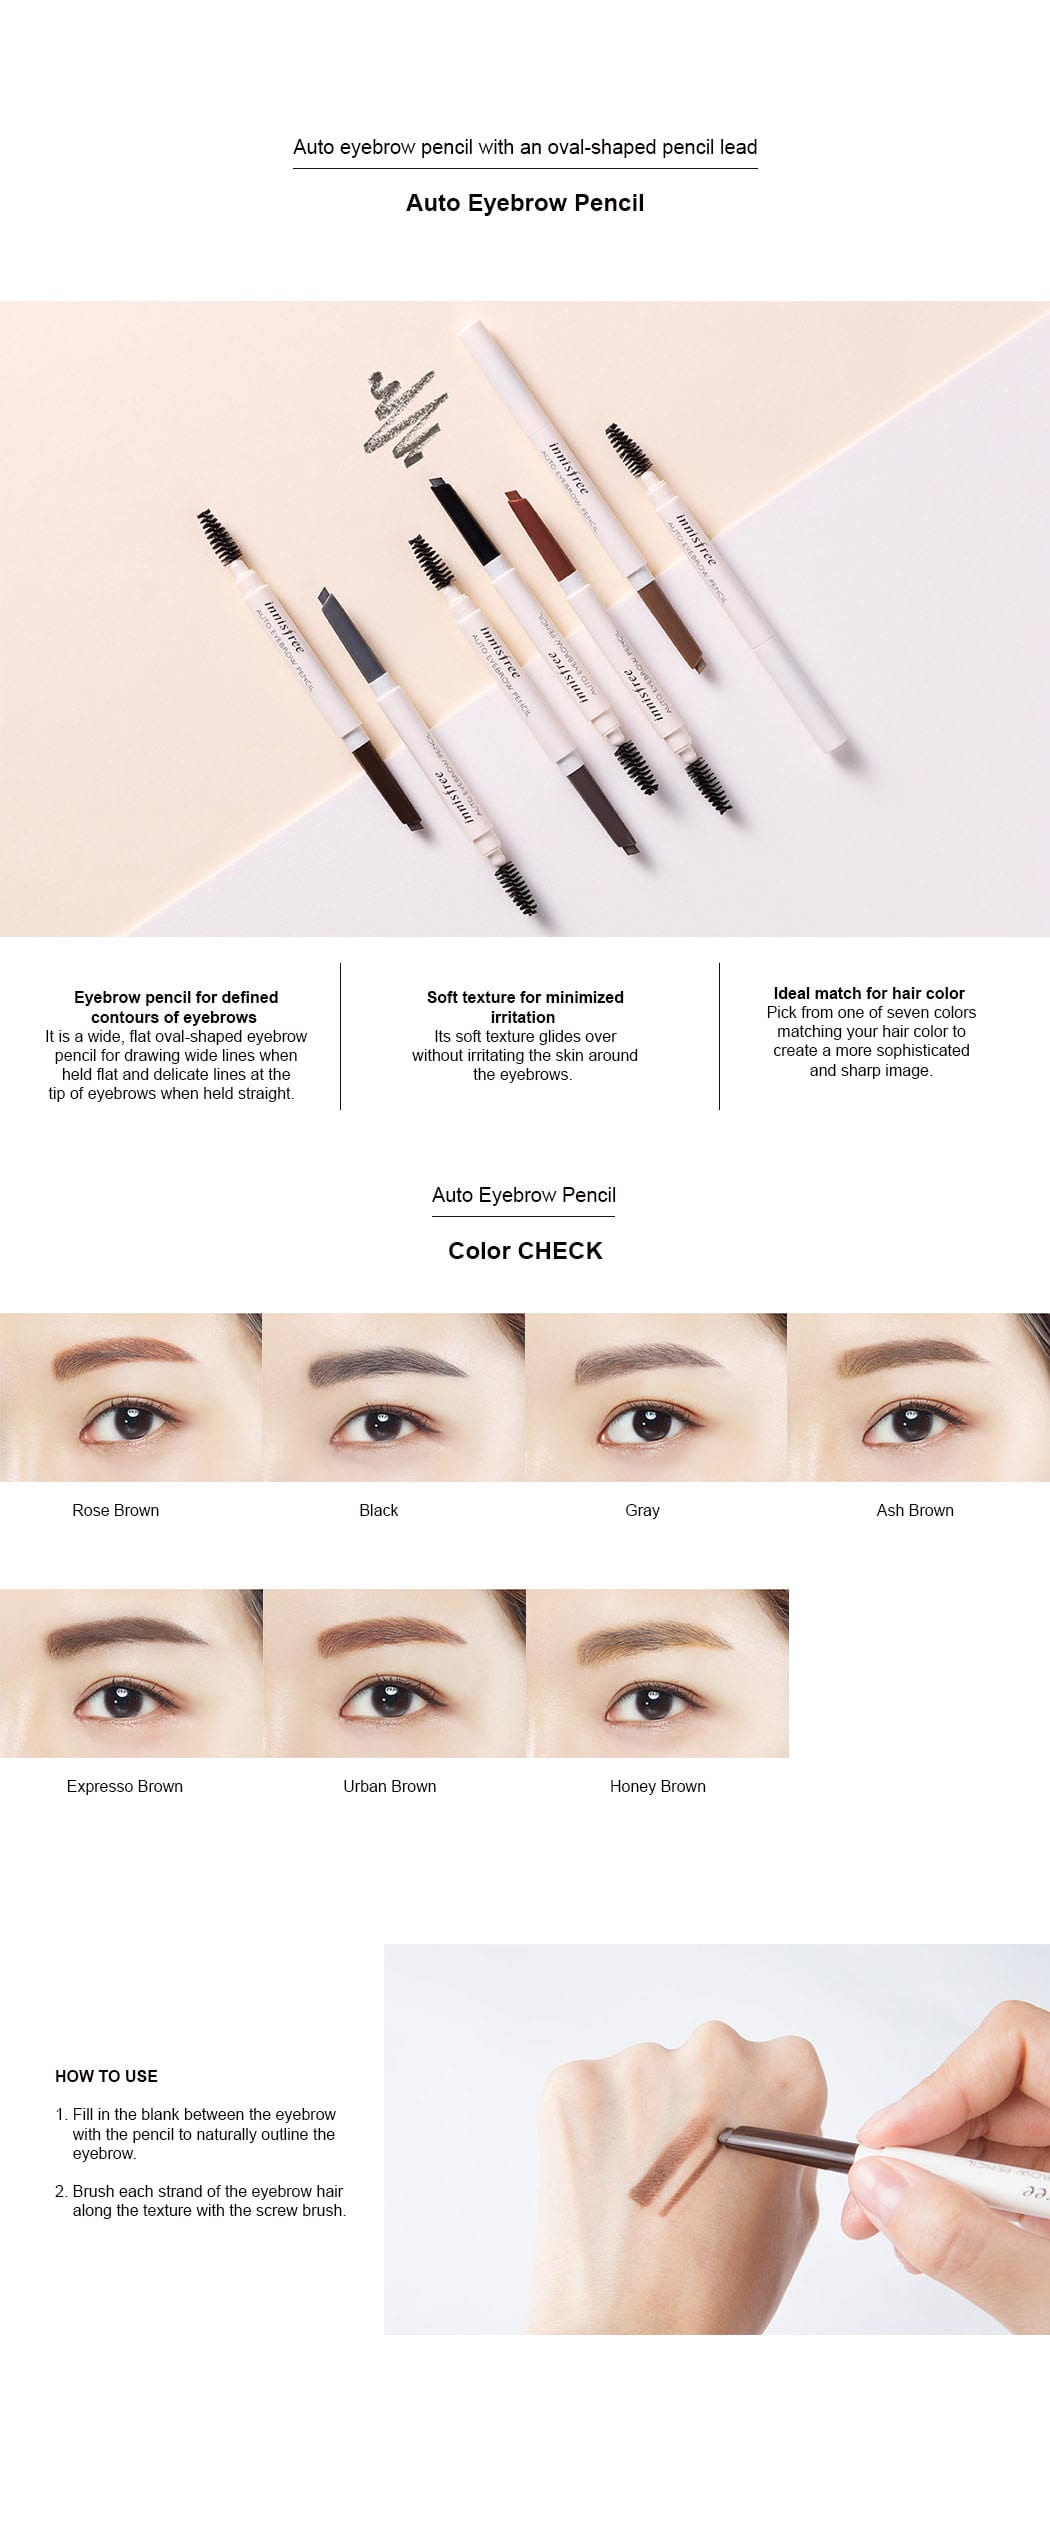 Auto Eyebrow Pencil 0.3g How to Use Description Ingredients